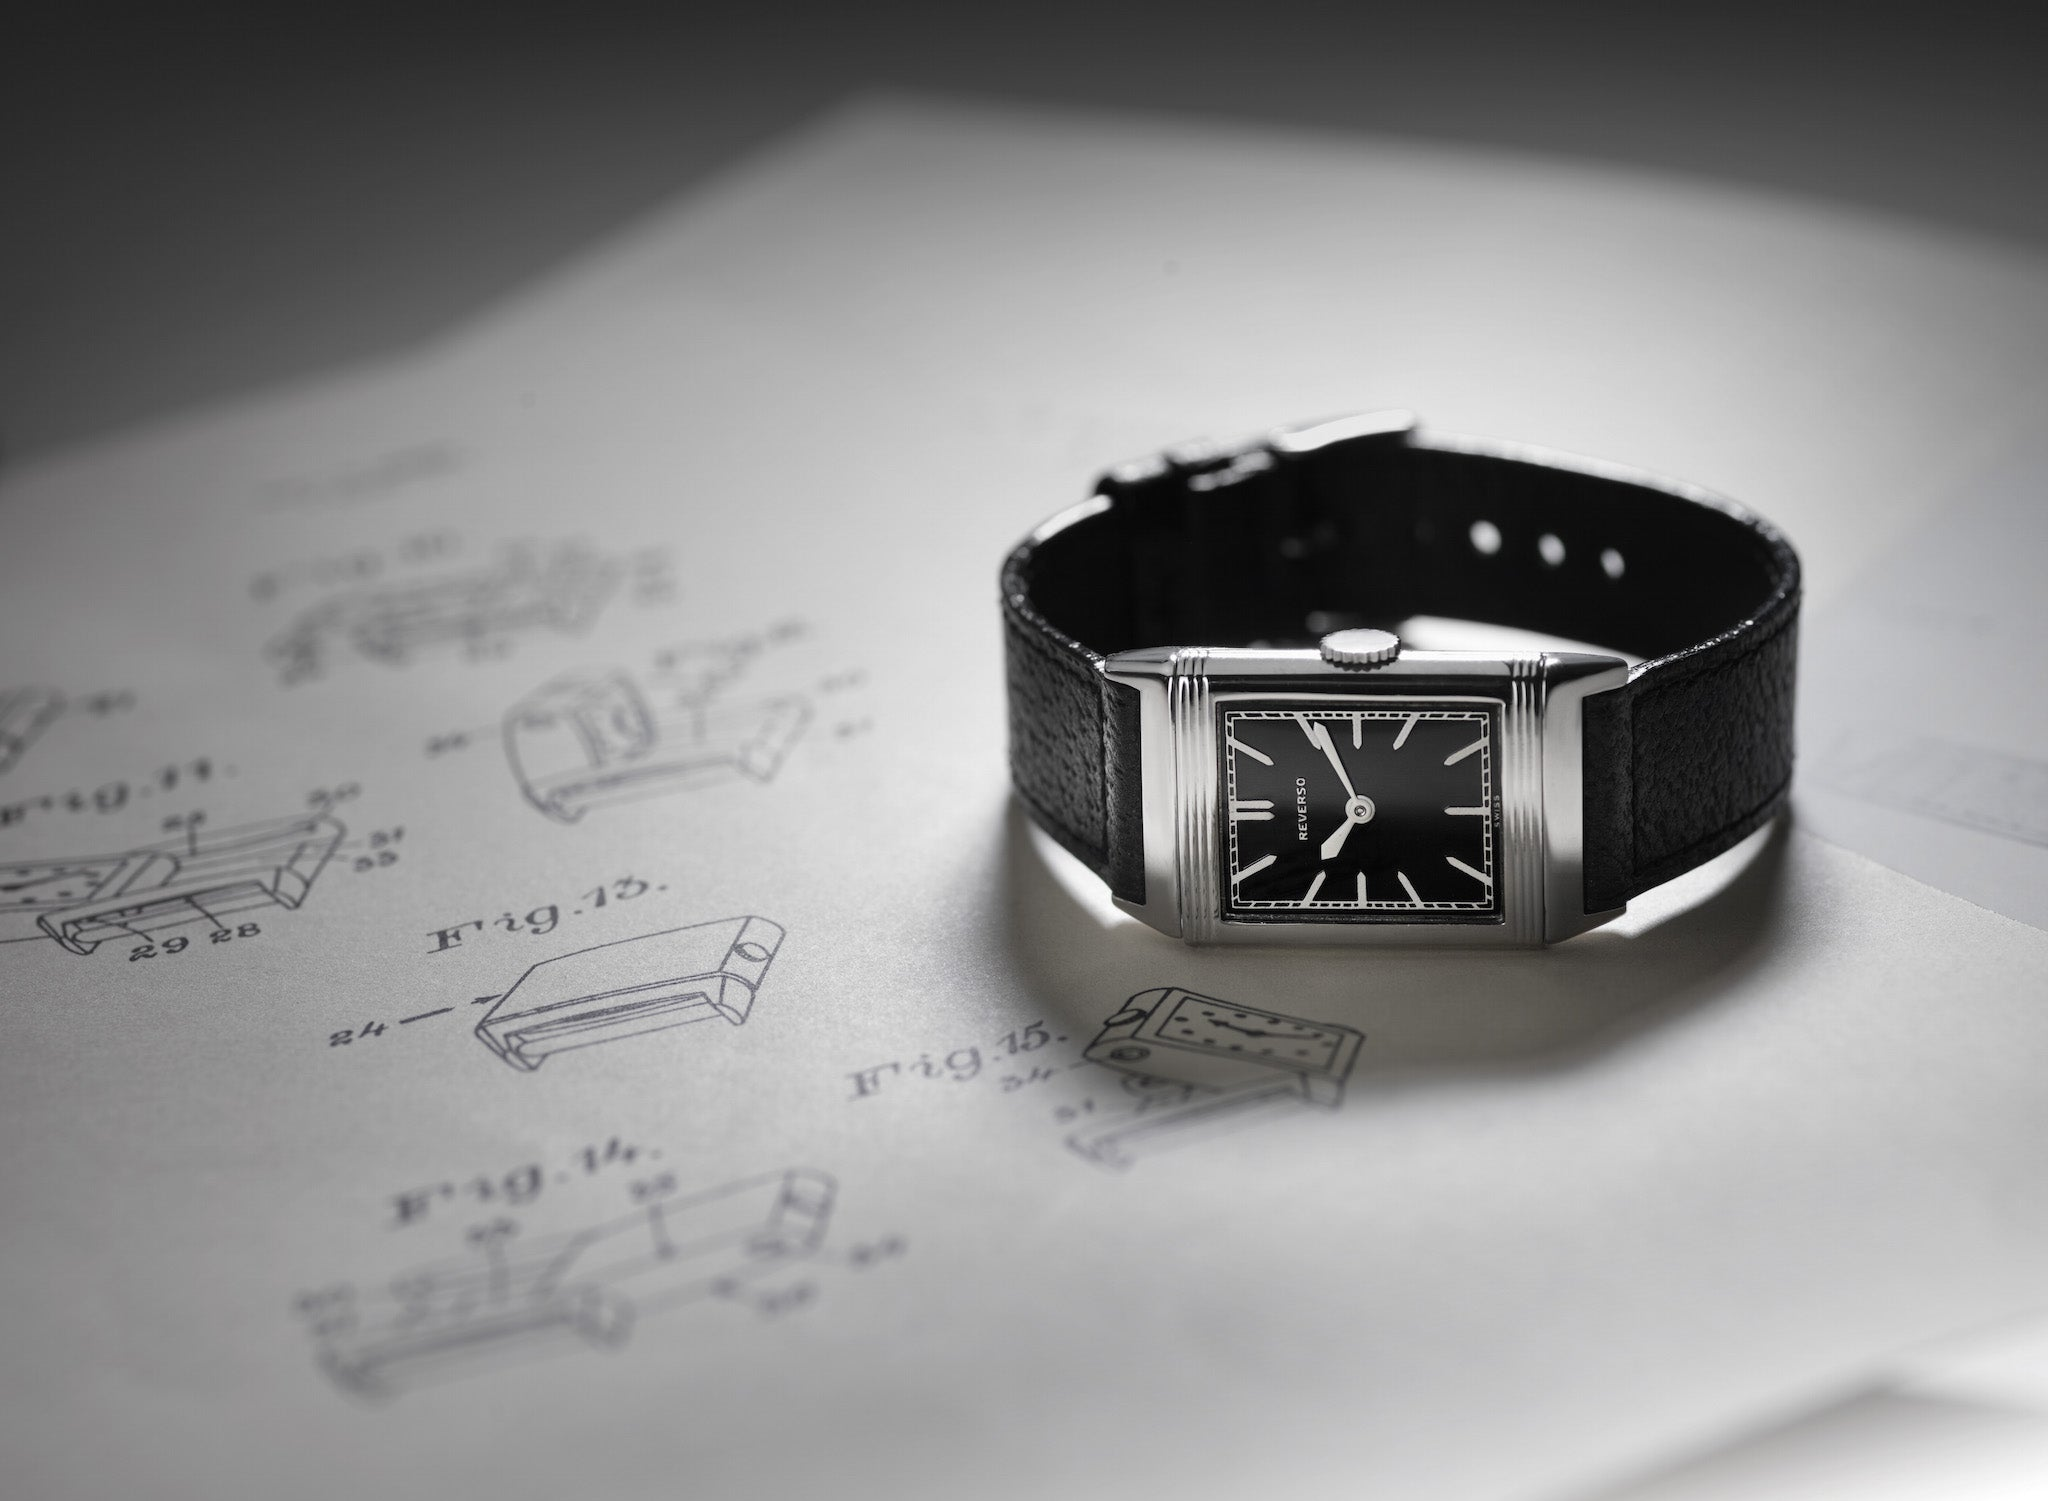 Jaeger-LeCoultre Reverso luxury watch with black dial